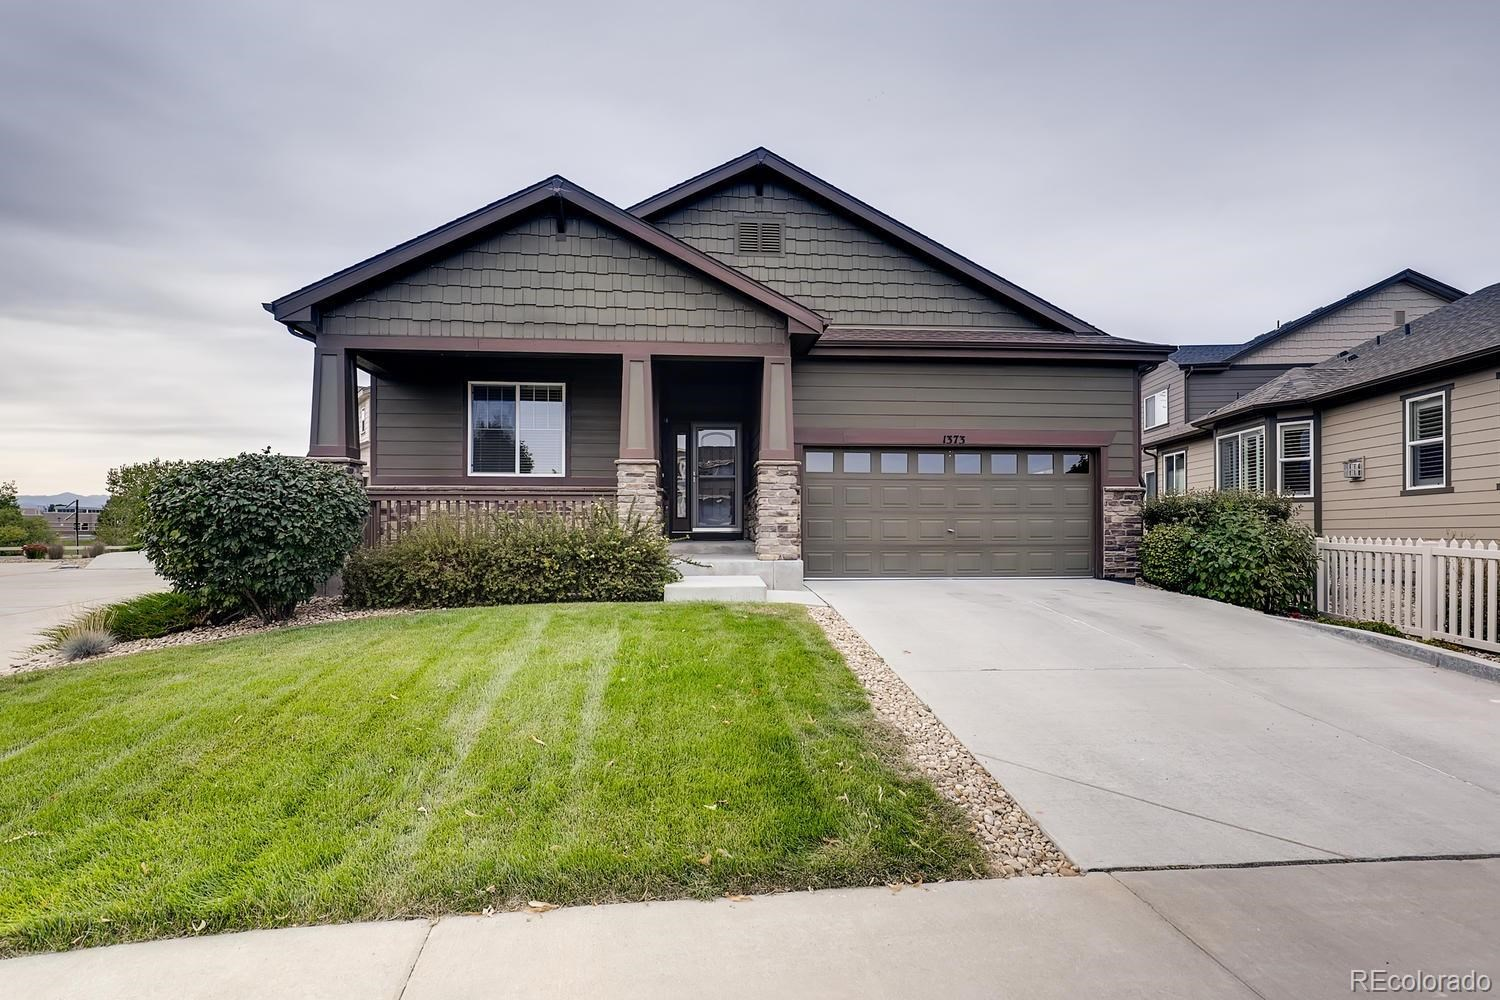 MLS# 8893940 - 1 - 1373 Armstrong Drive, Longmont, CO 80504